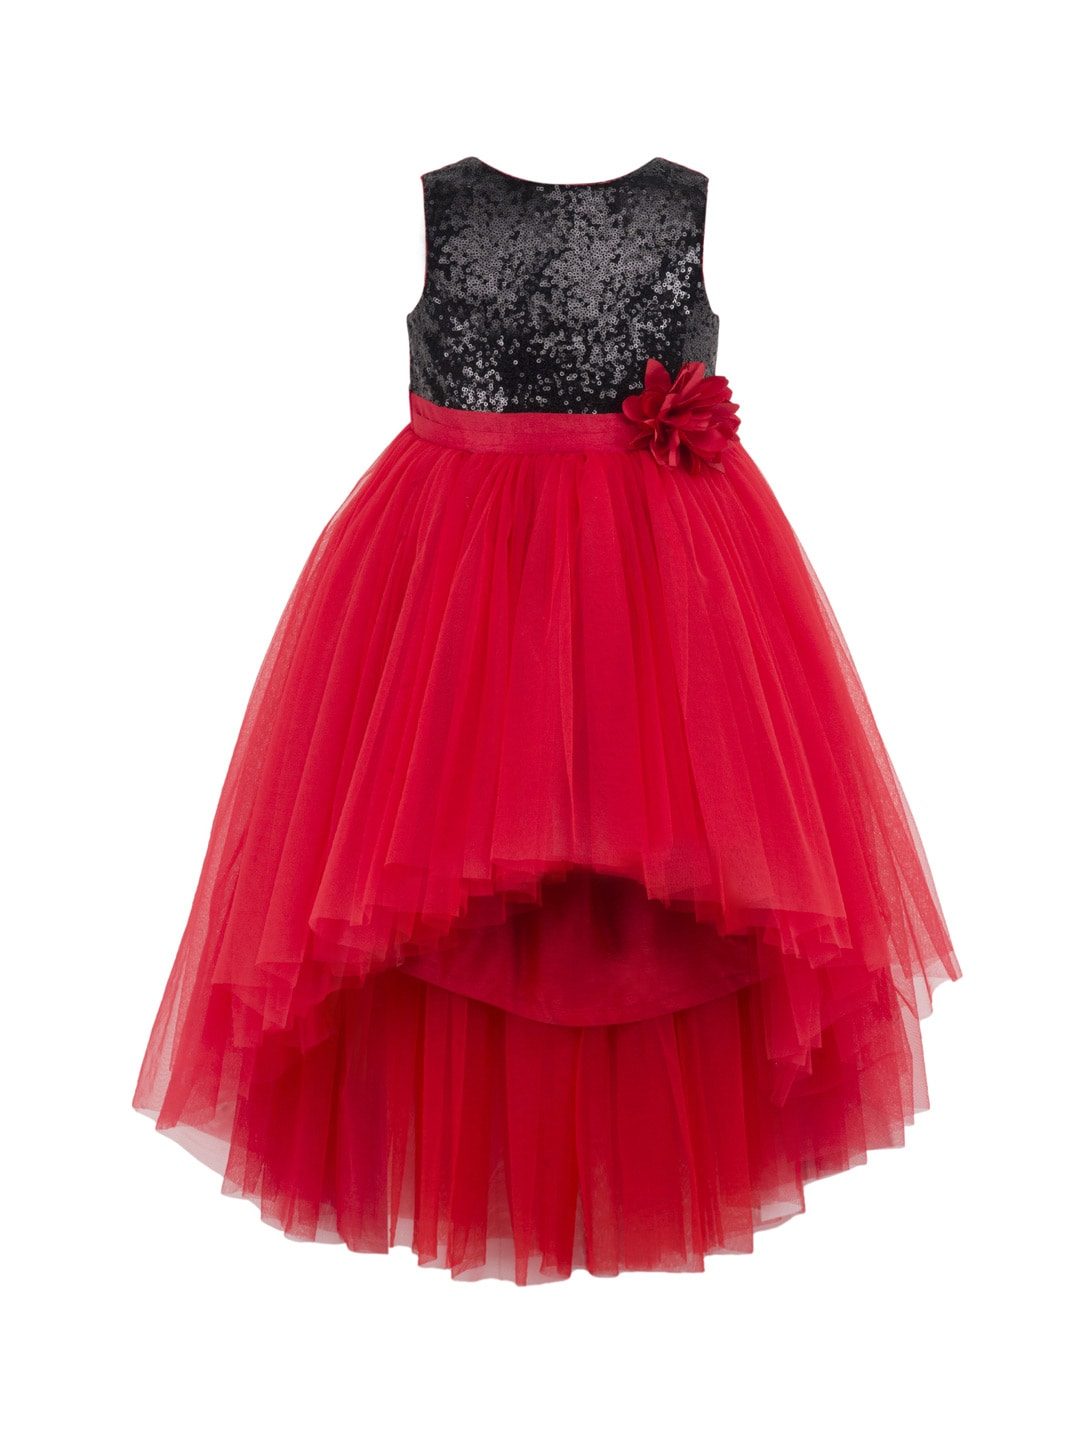 Where can i buy a red dress